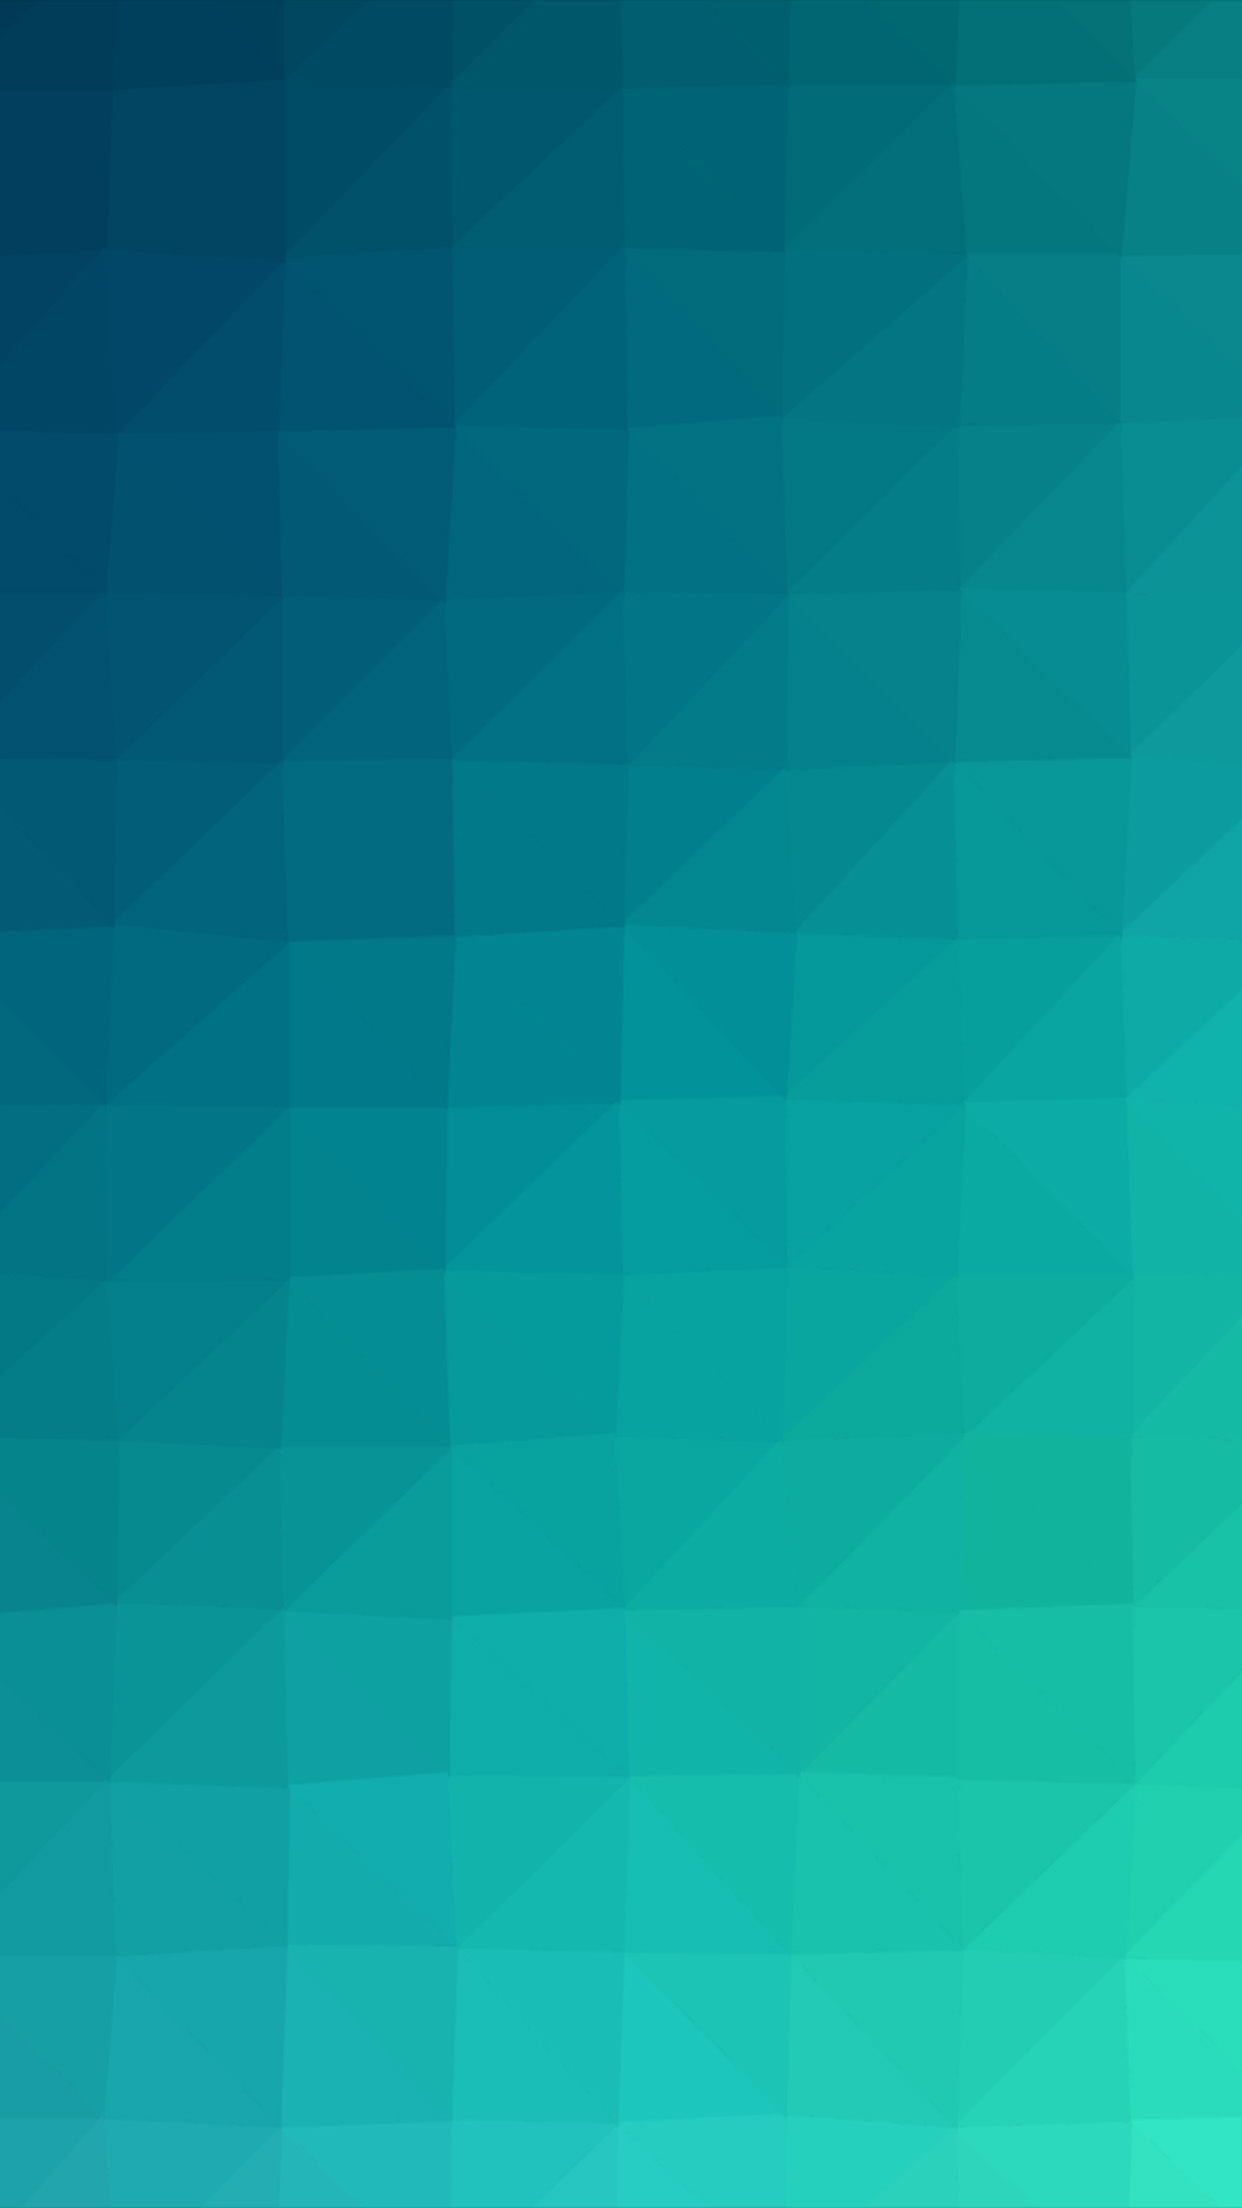 Samsung Wallpaper Hd Blue Green Polygon Art Abstract Pattern Android Wallpaper